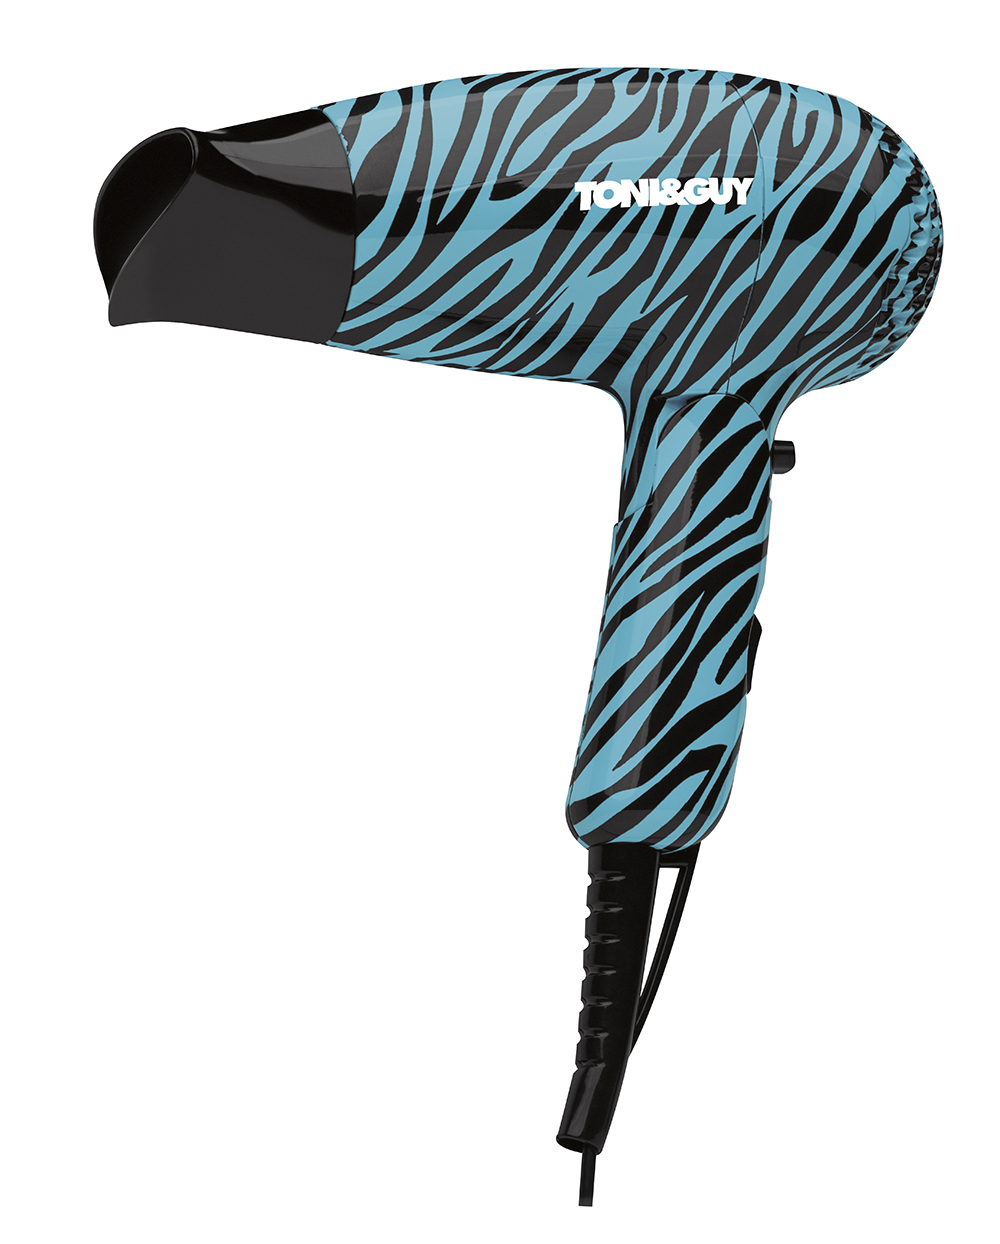 toni and guy hairdryer